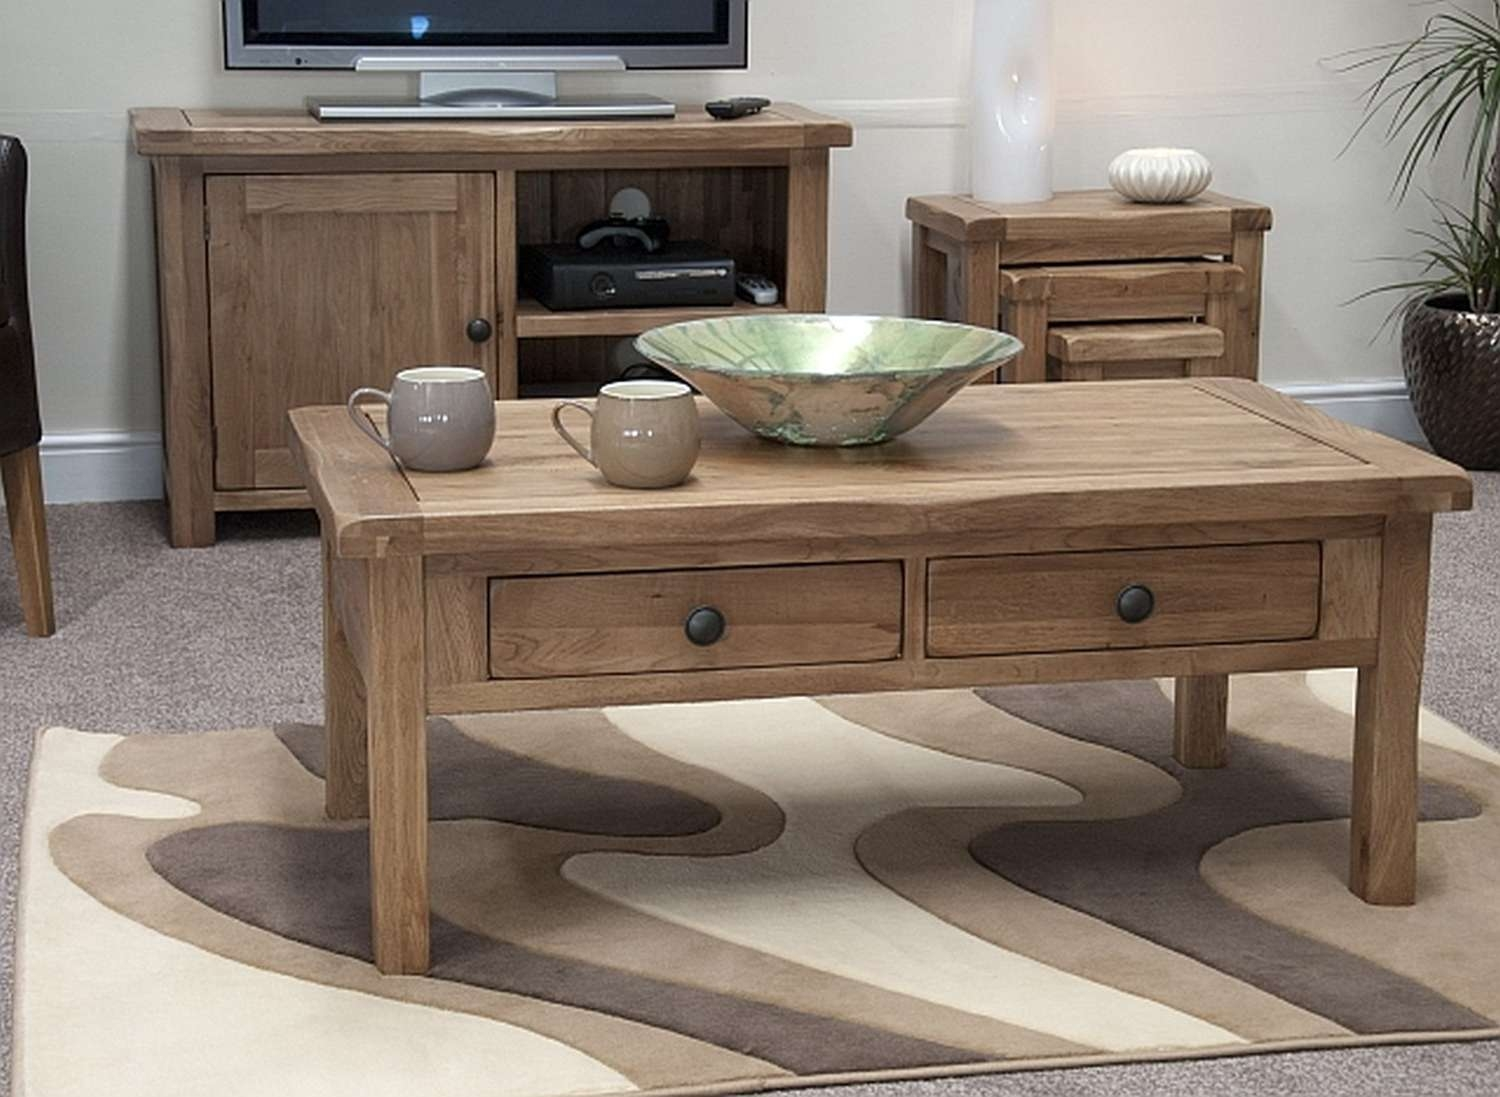 Coffee Tables : Dazzling Original Rustic Storage Coffee Table Diy With Regard To Trendy Rustic Oak Coffee Table With Drawers (View 5 of 20)